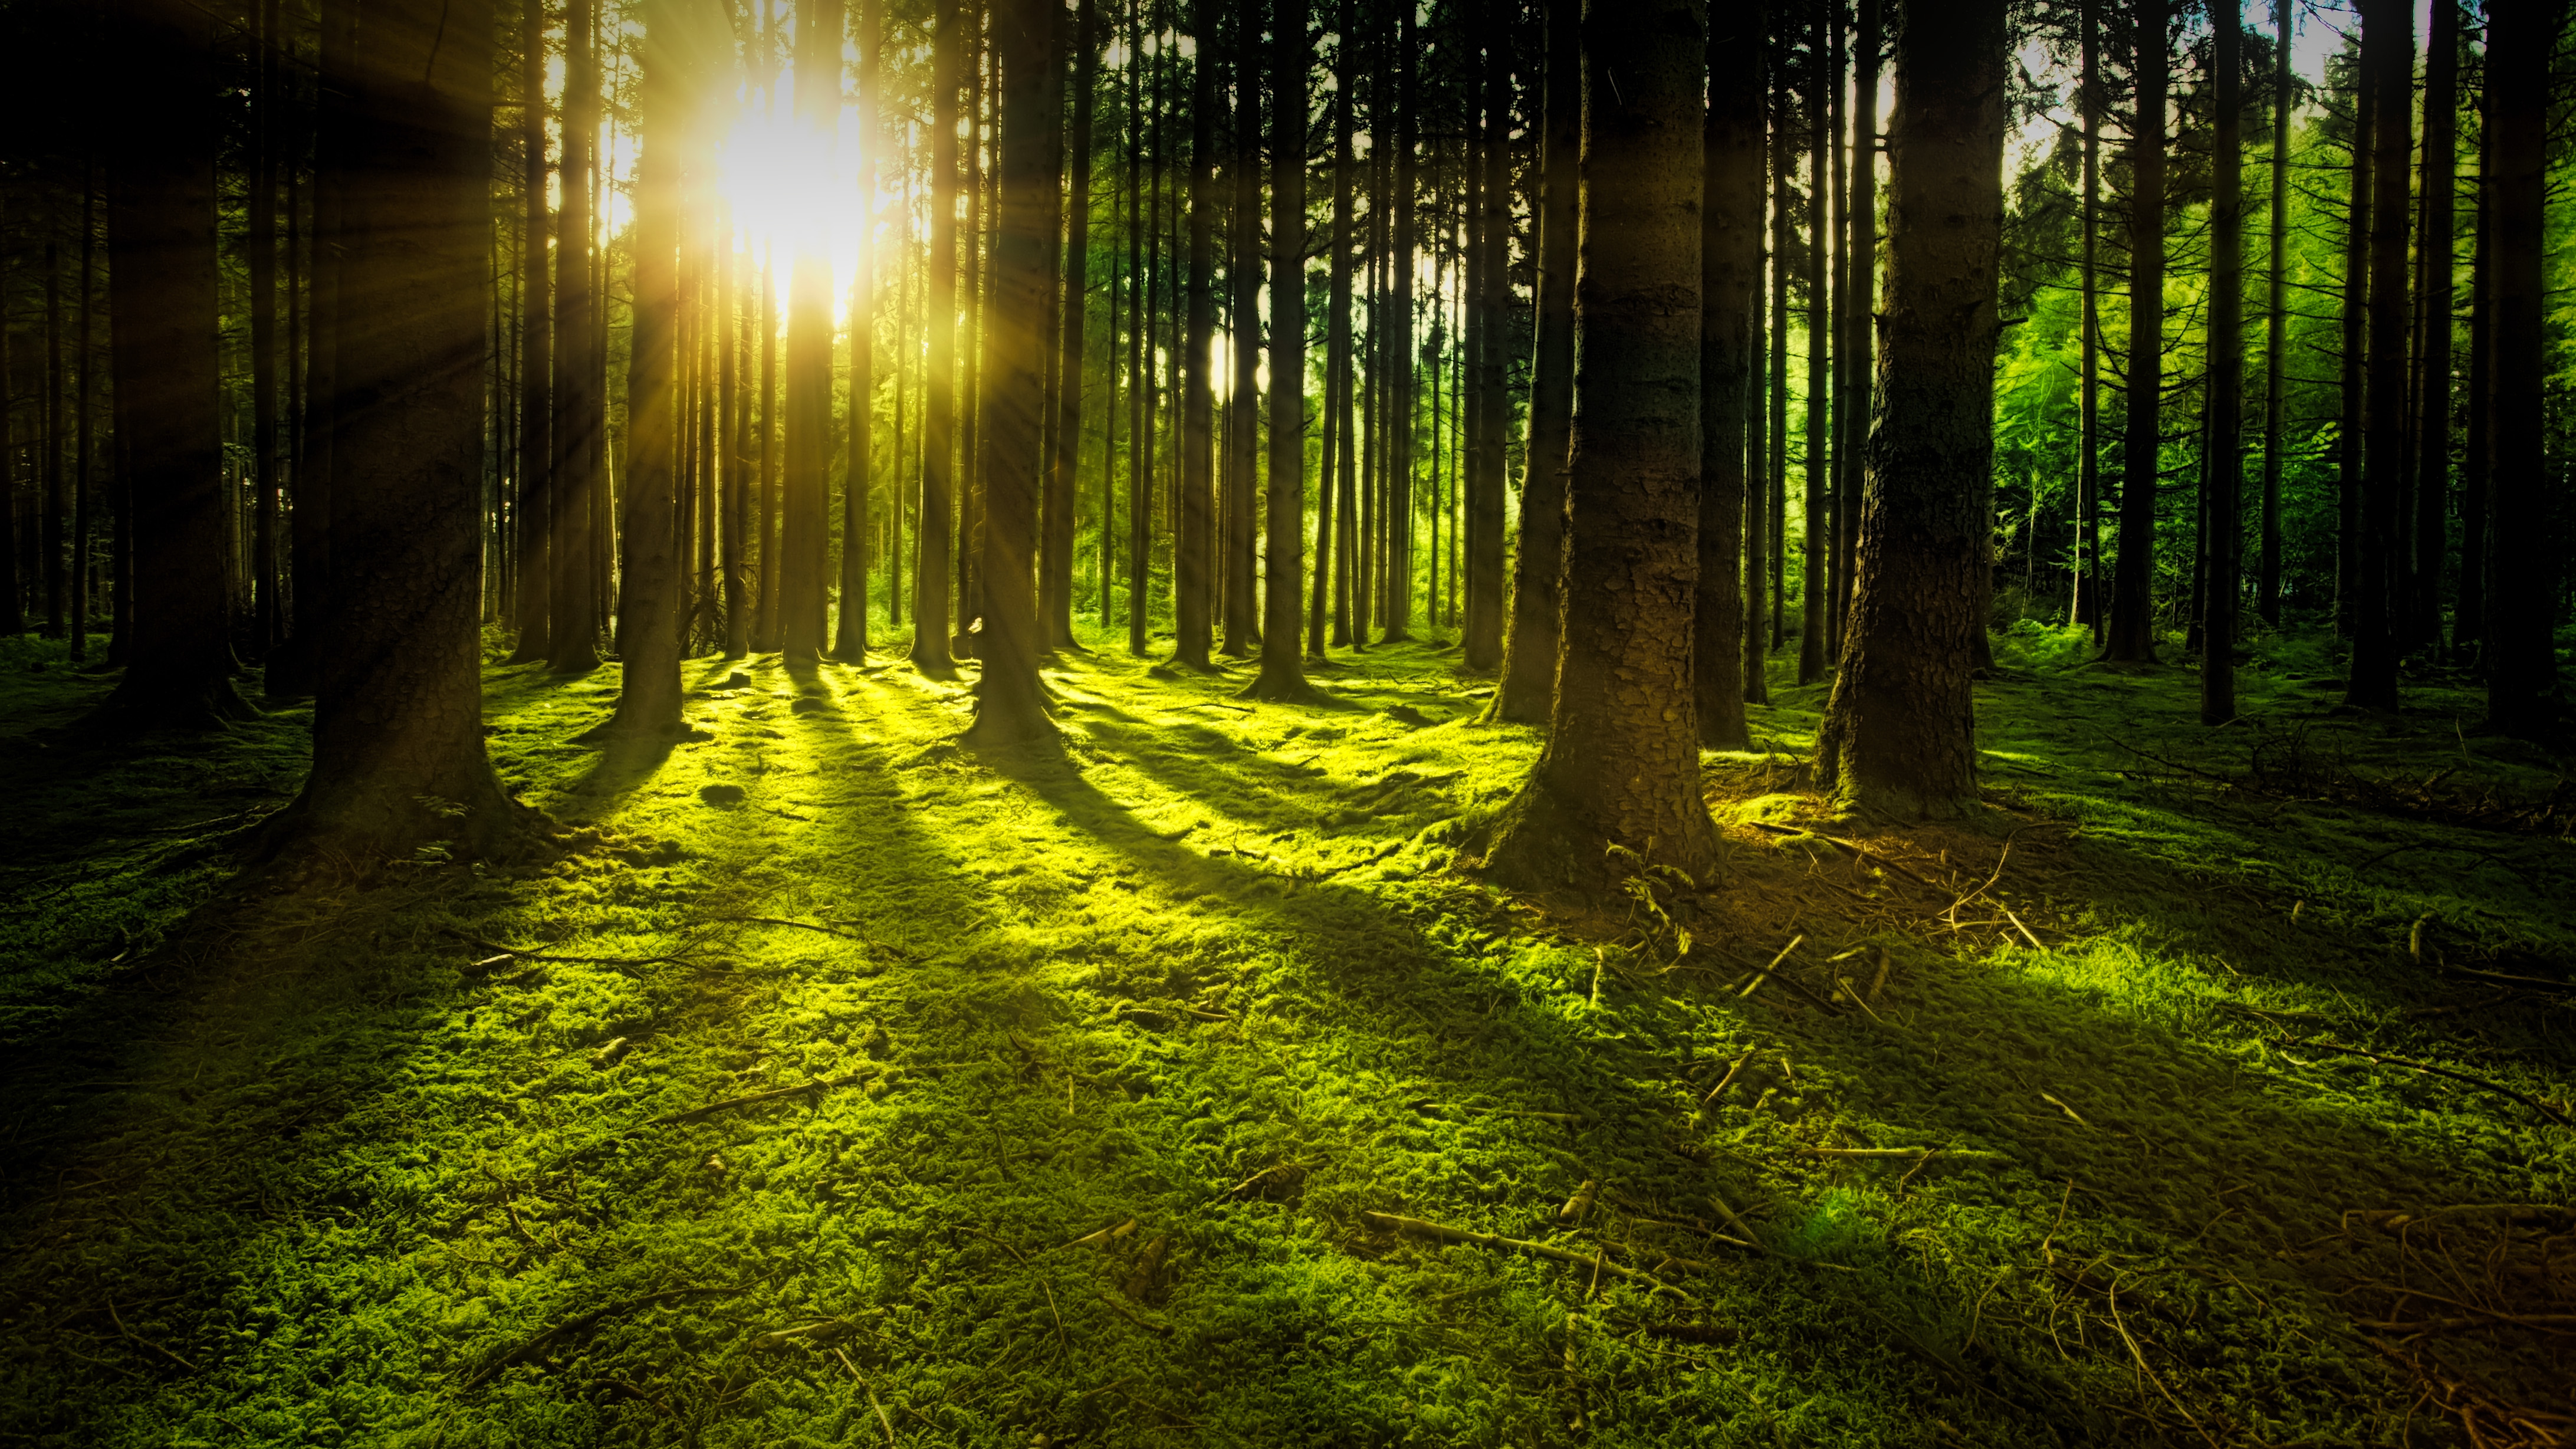 Ray Of Sunlight Flowing In Trees 183 Free Stock Photo